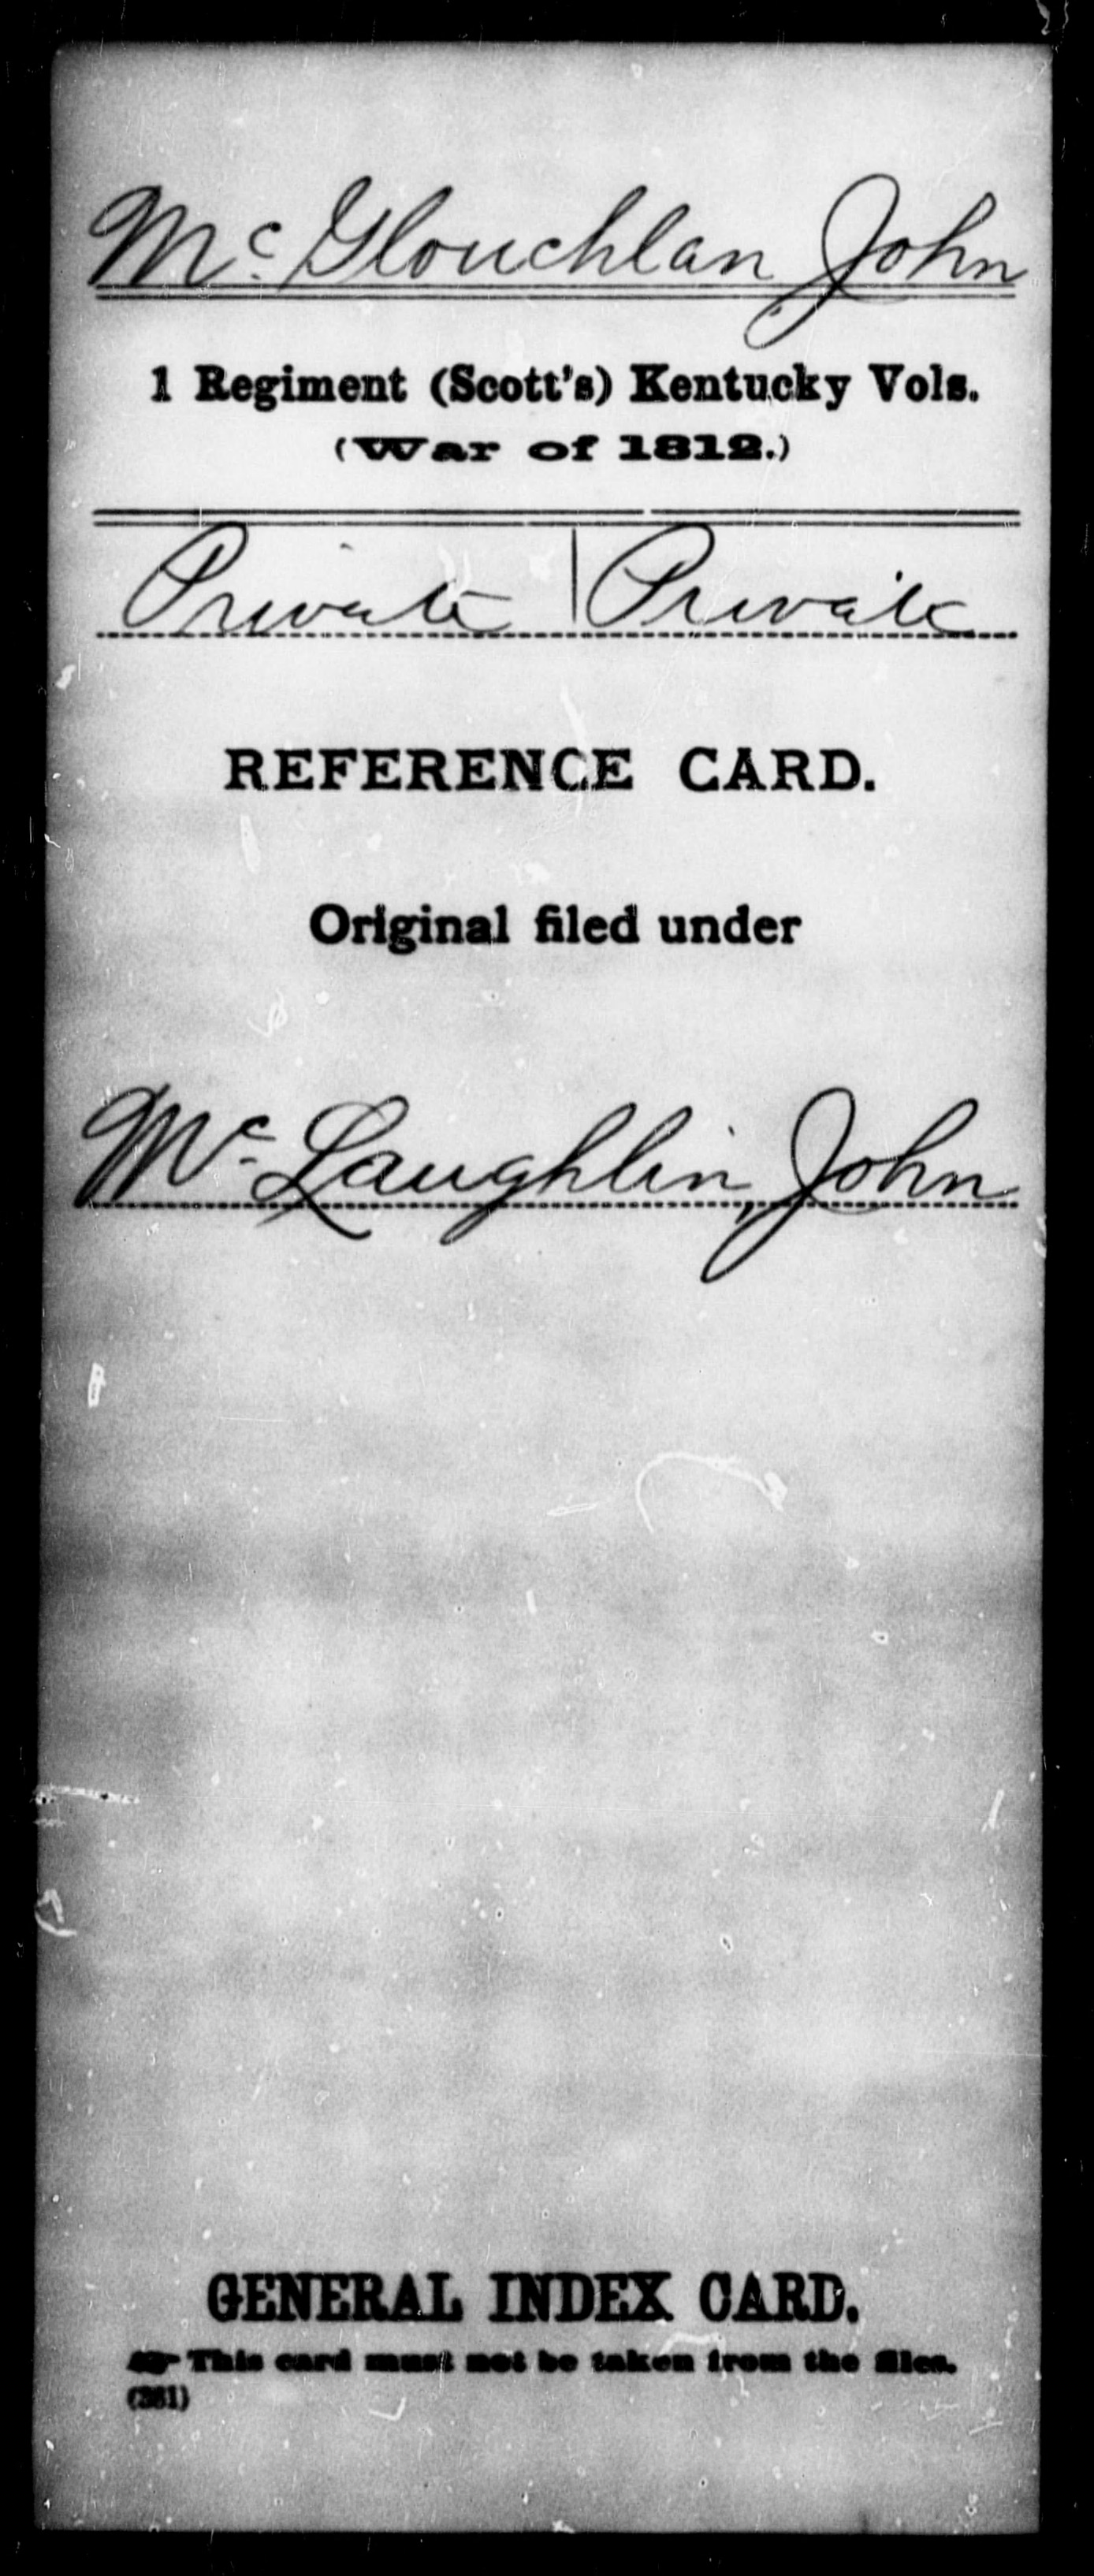 McGlouchlan, John - State: Kentucky - Regiment: 1 (Scott's) Kentucky Vols